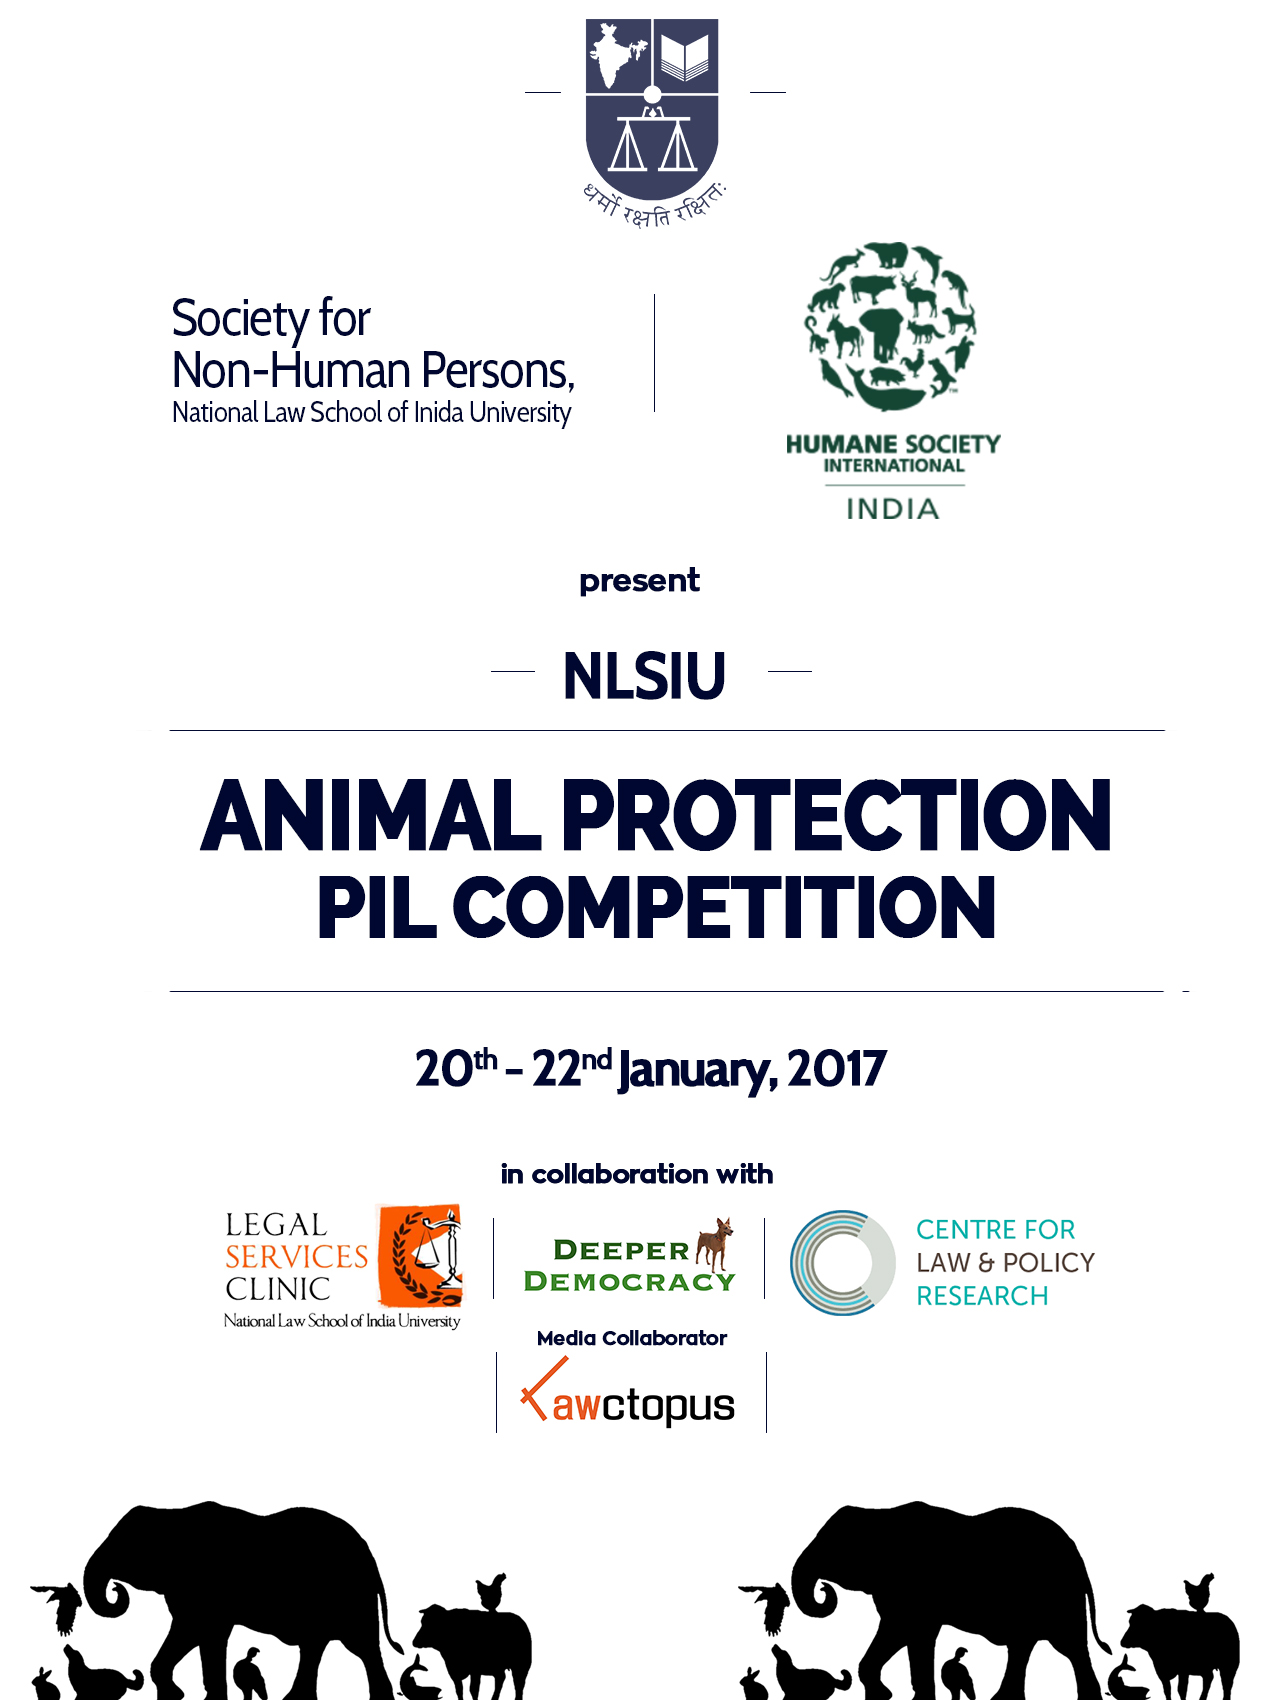 NLSIU Animal Protection PIL Competition